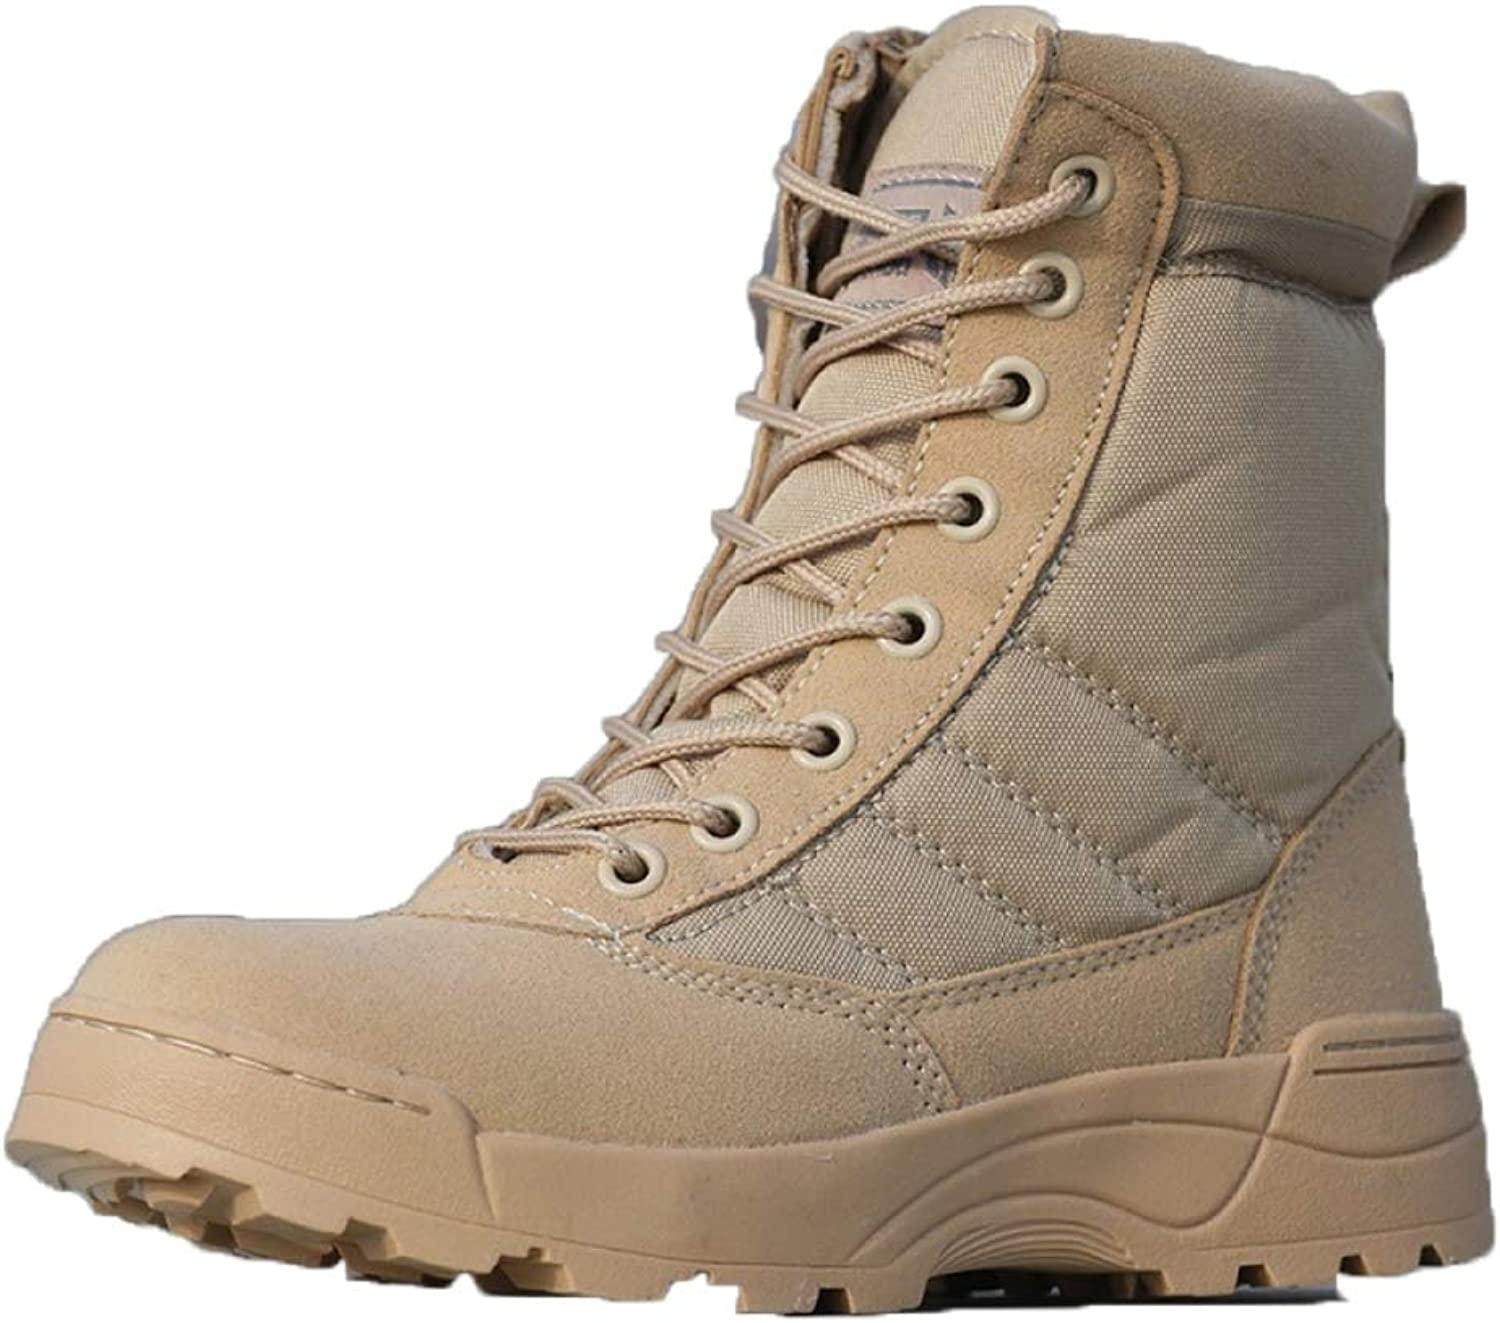 DSFGHE Men Boots Spring and Autumn Tactical Boots Lightweight Work Boots High Help Breathable High Help Lace-up shoes Snow Boots